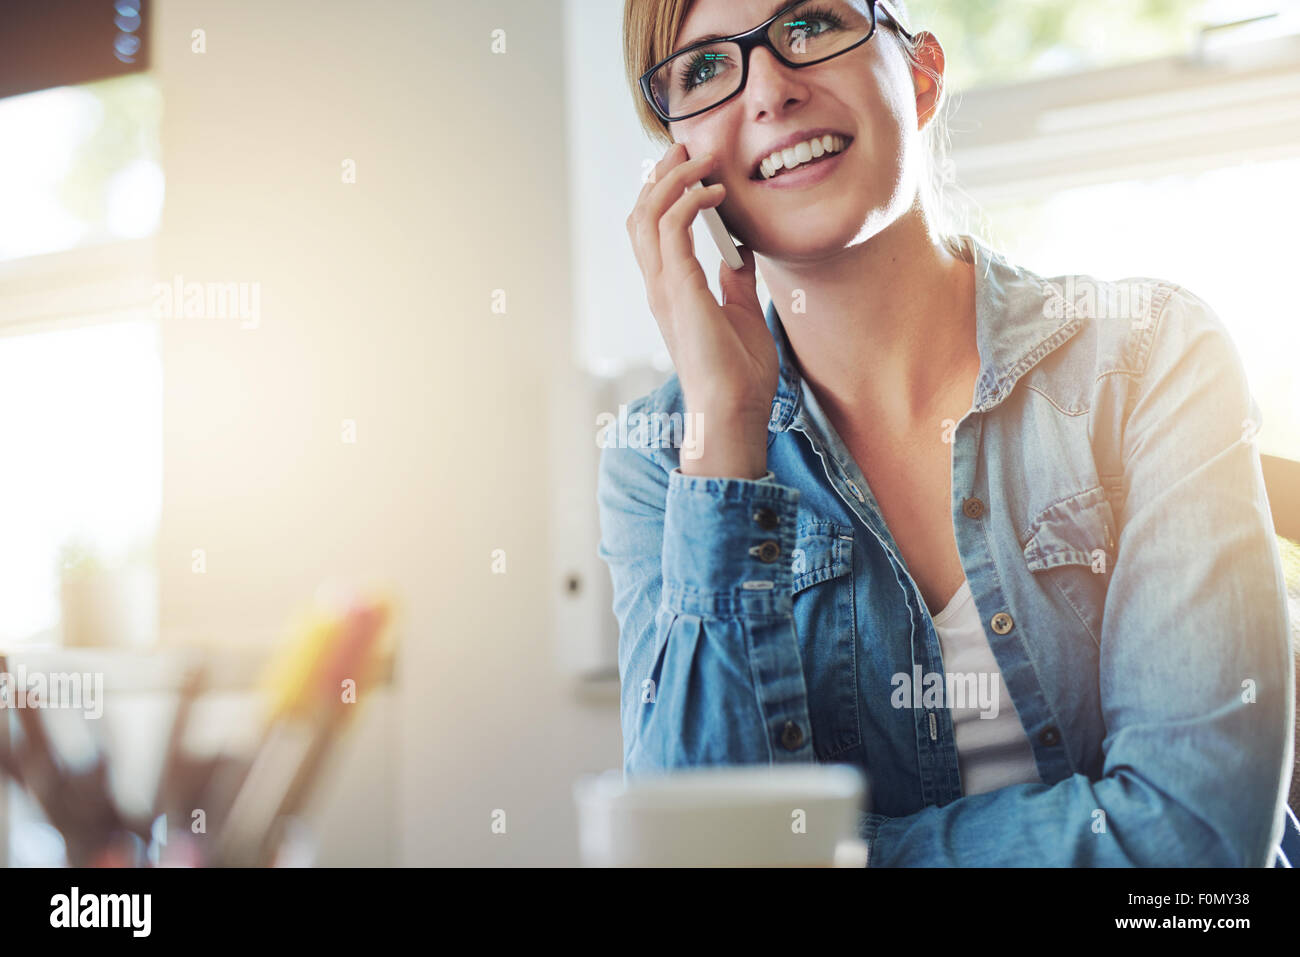 Close up Young Office Woman Talking to Someone on her Mobile Phone While Looking Into the Distance with Happy Facial - Stock Image